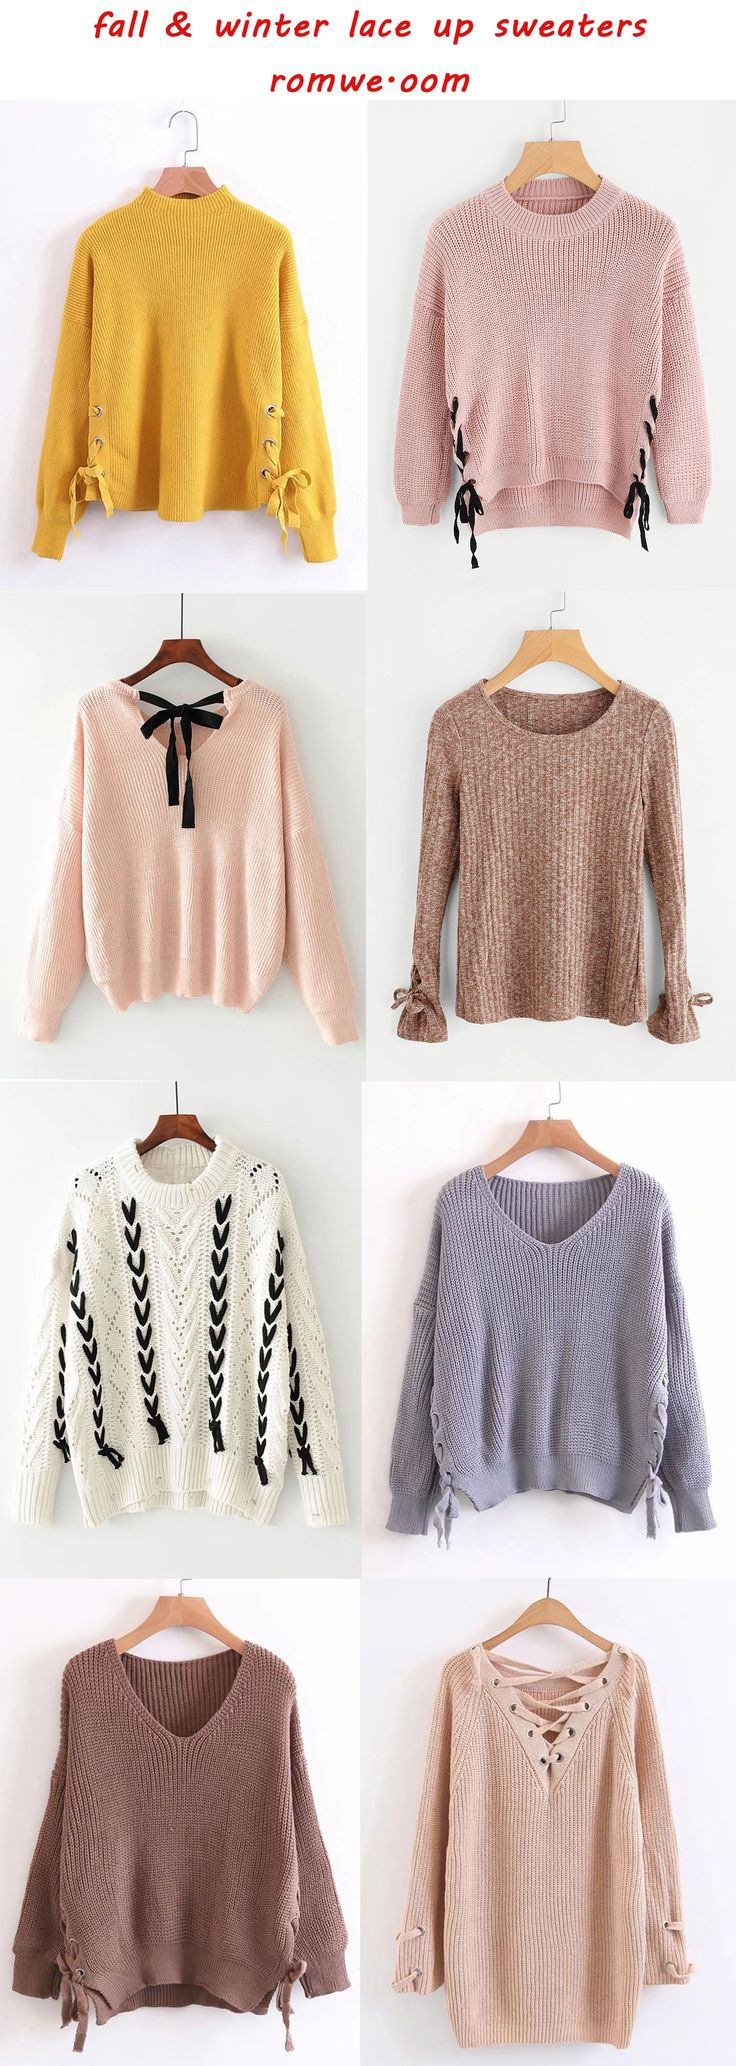 cute & cozy lace up sweaters  - romwe.com